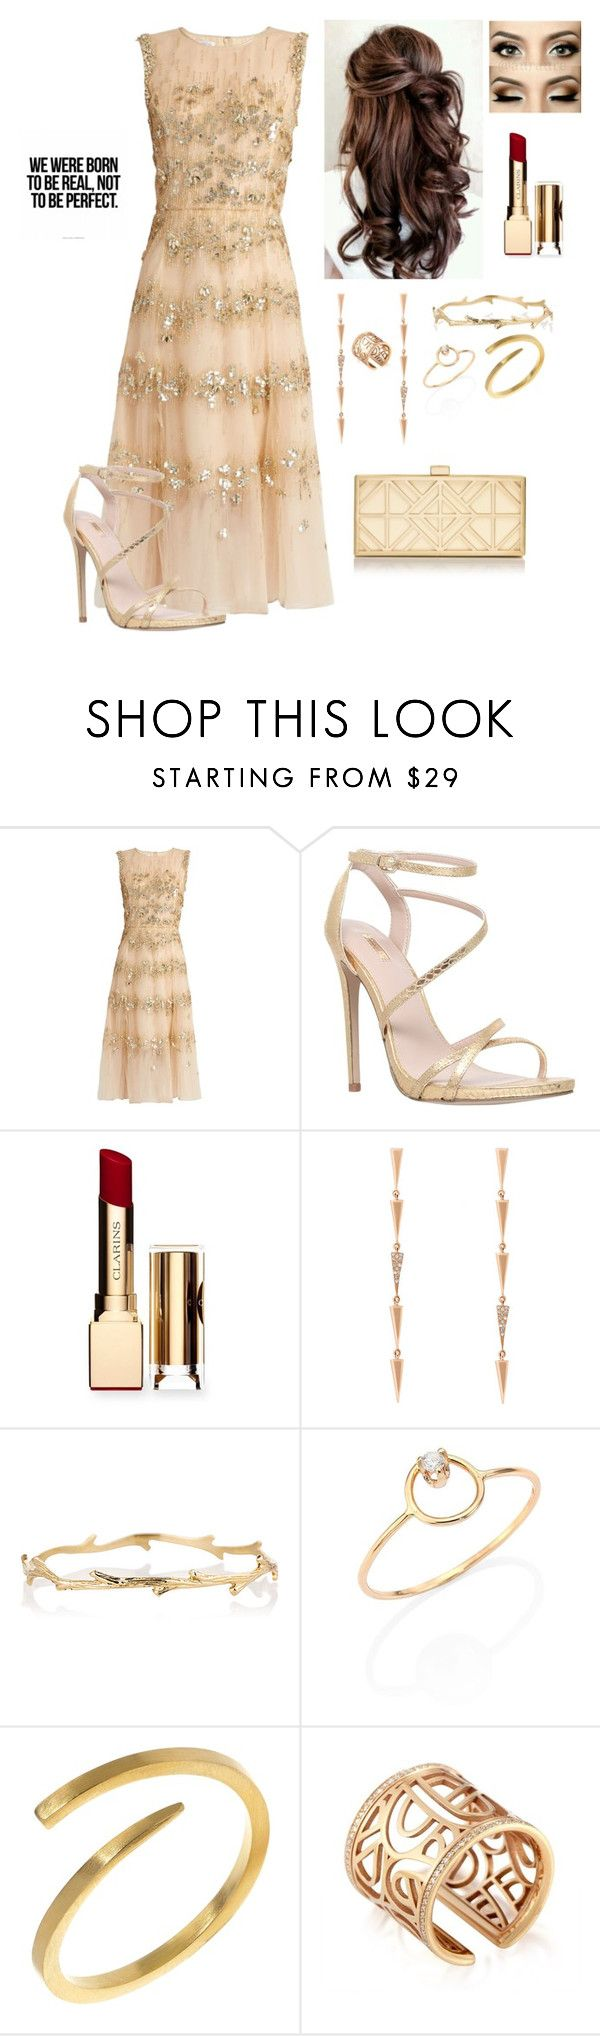 """Untitled #739"" by kmmurphy ❤ liked on Polyvore featuring Oscar de la Renta, Carvela, Clarins, Eva Fehren, Logan Hollowell, ZoÃ« Chicco, Rhiannon Lewis Jewellery, Poiray Paris and Tory Burch"